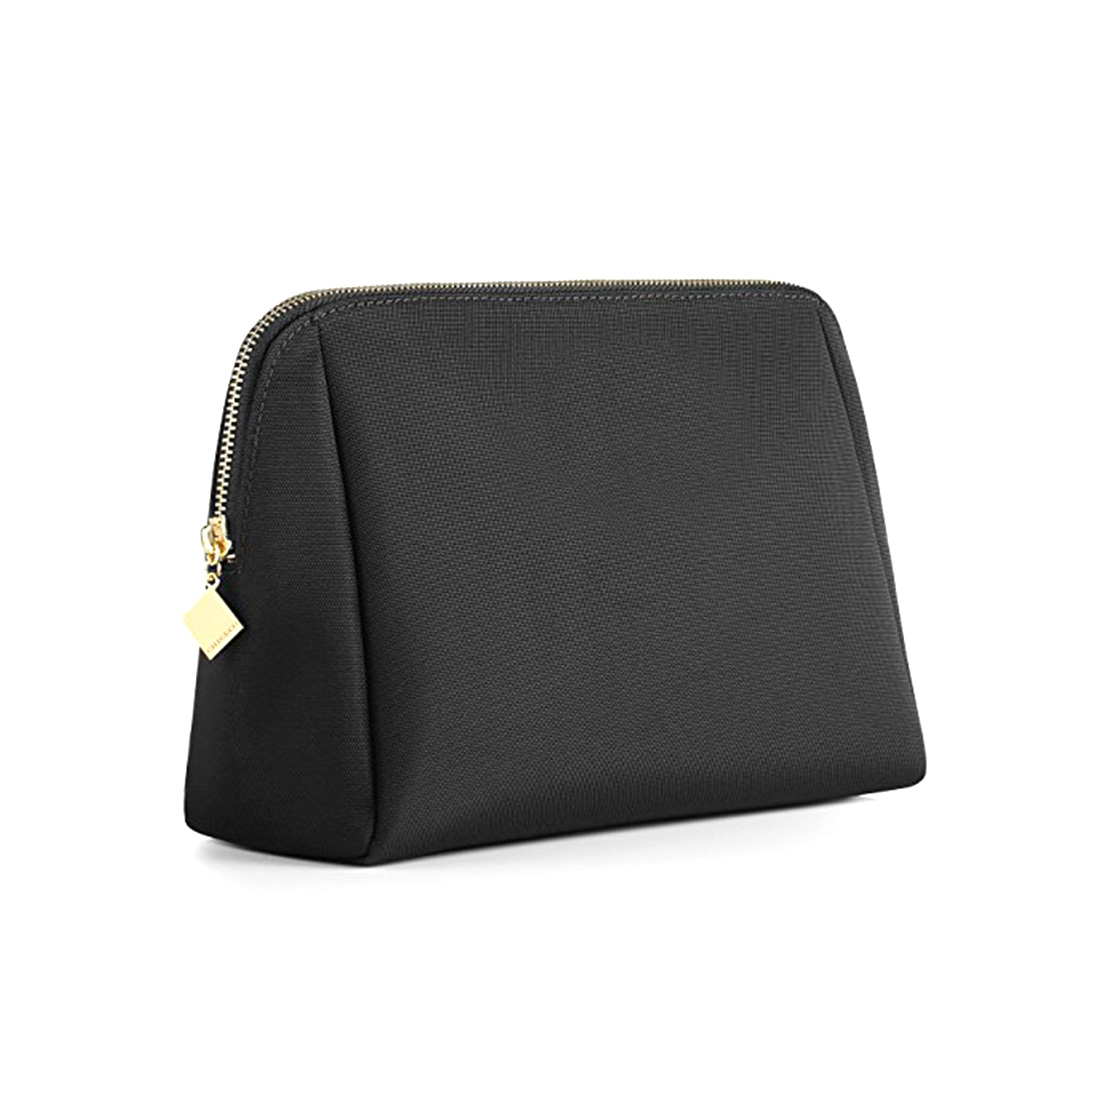 Real Leather Fashion Cosmetic Bag For Women